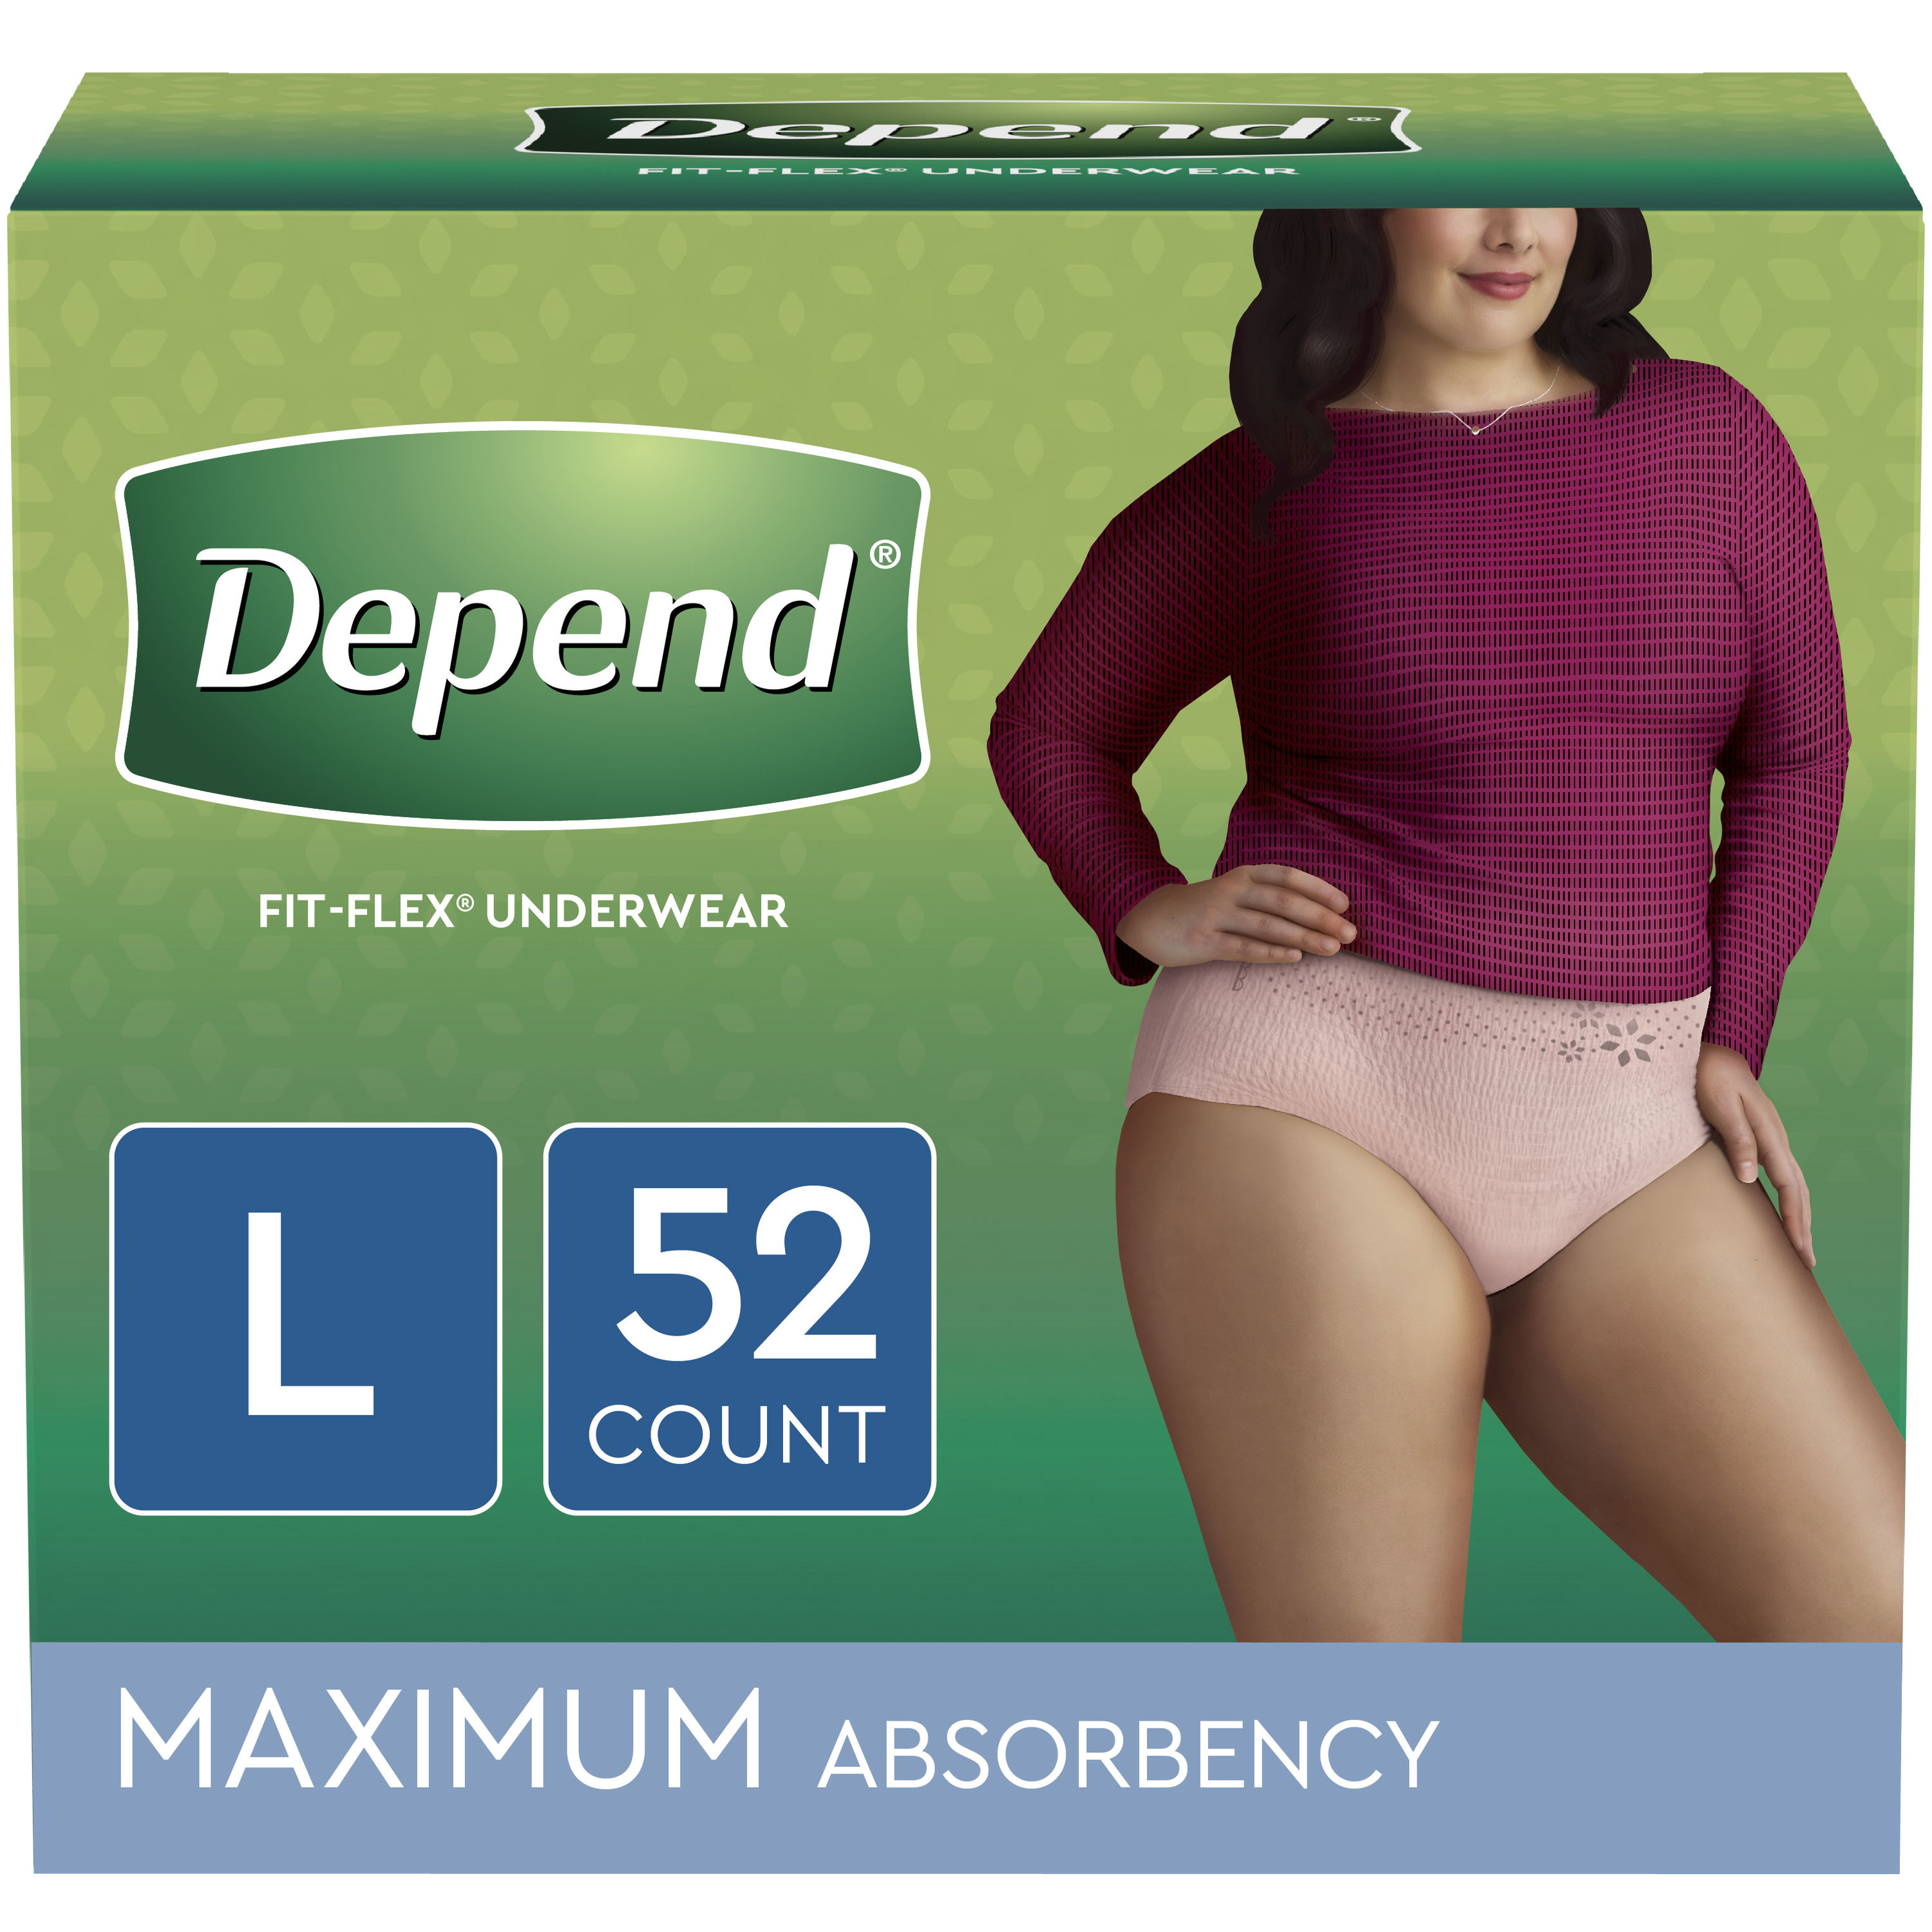 Depend FIT-FLEX Incontinence Underwear for Women, Maximum Absorbency, L, Blush, 52 Count